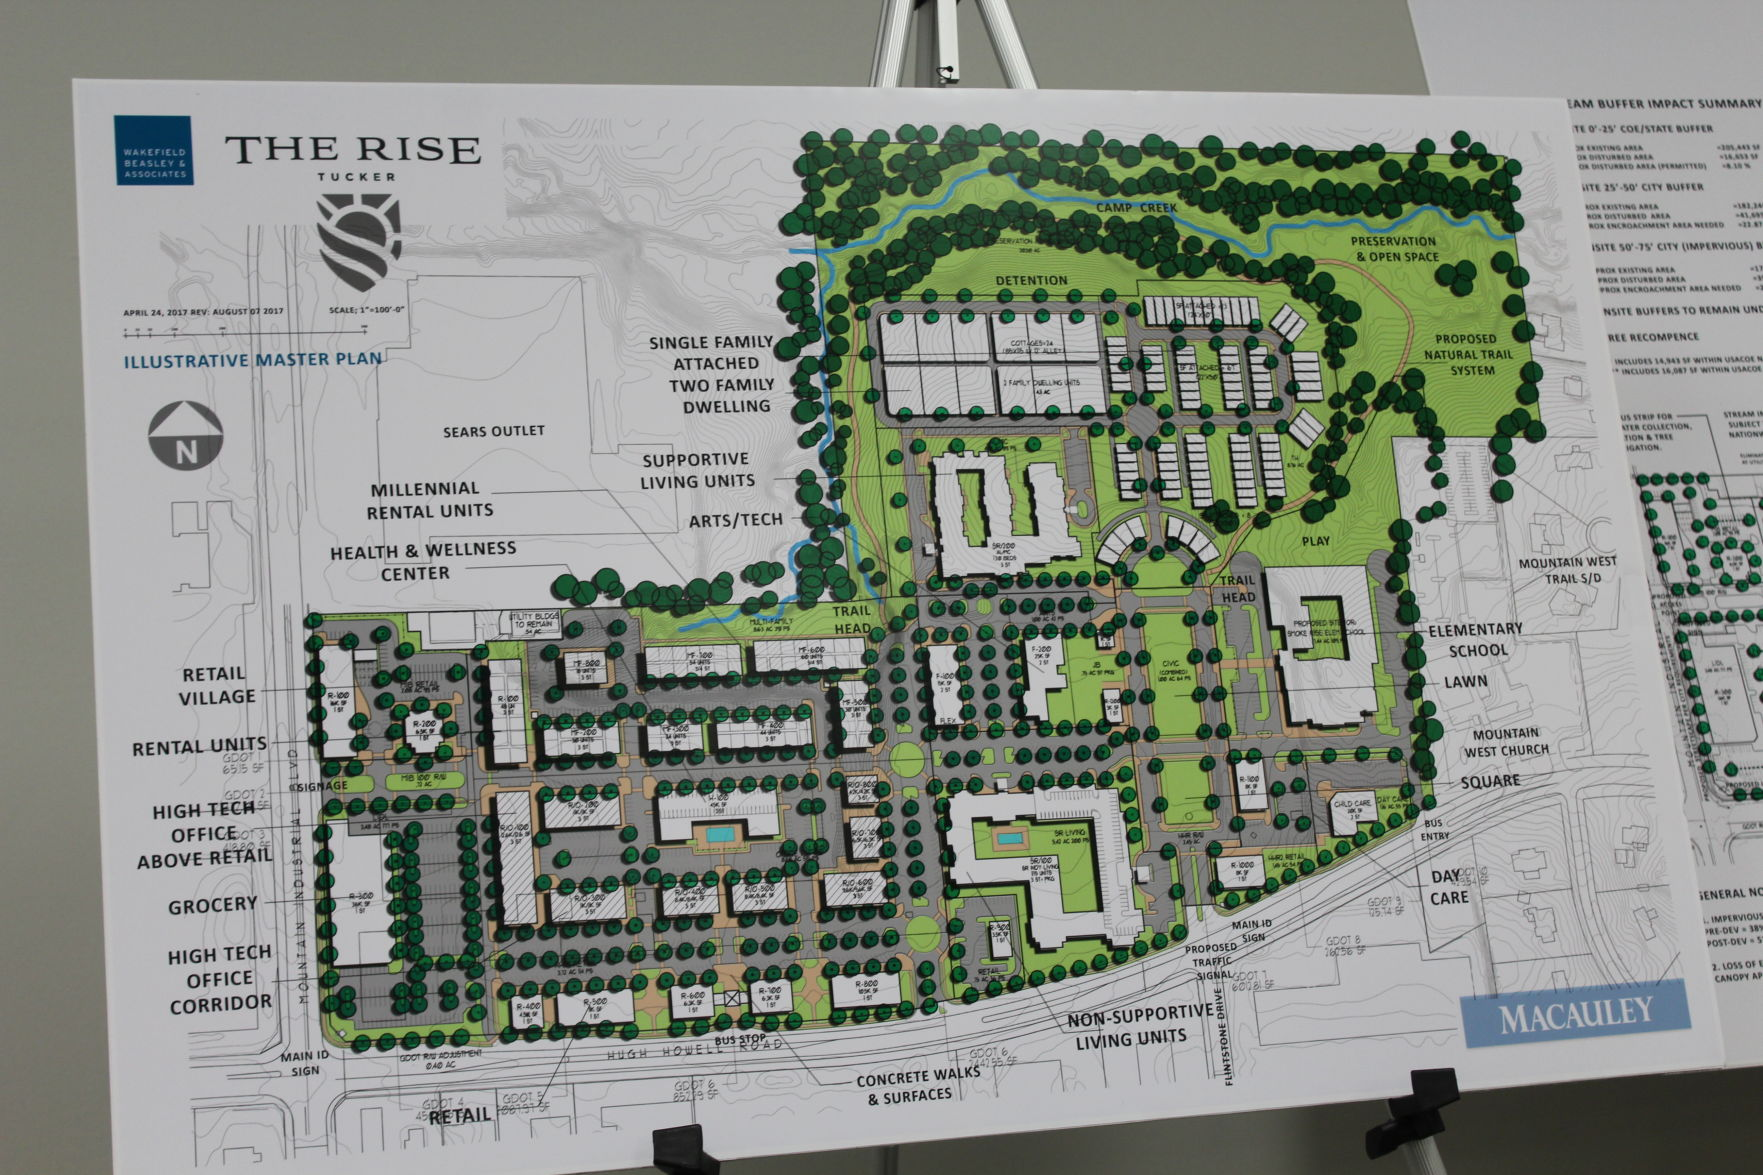 Road Map Of Project%0A Support and concern rises as Tucker city council gets first public hearing  on mixeduse project